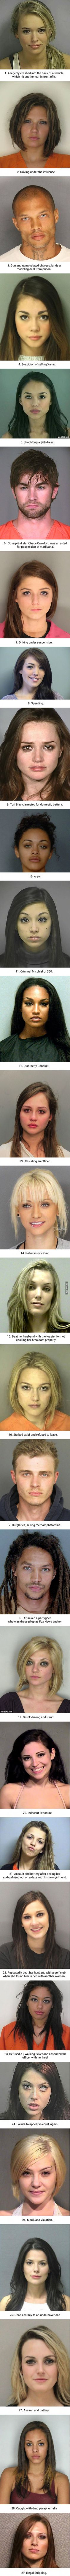 29 Ridiculously Photogenic Mugshots Reminds You Never Judge A Book By Its Cover